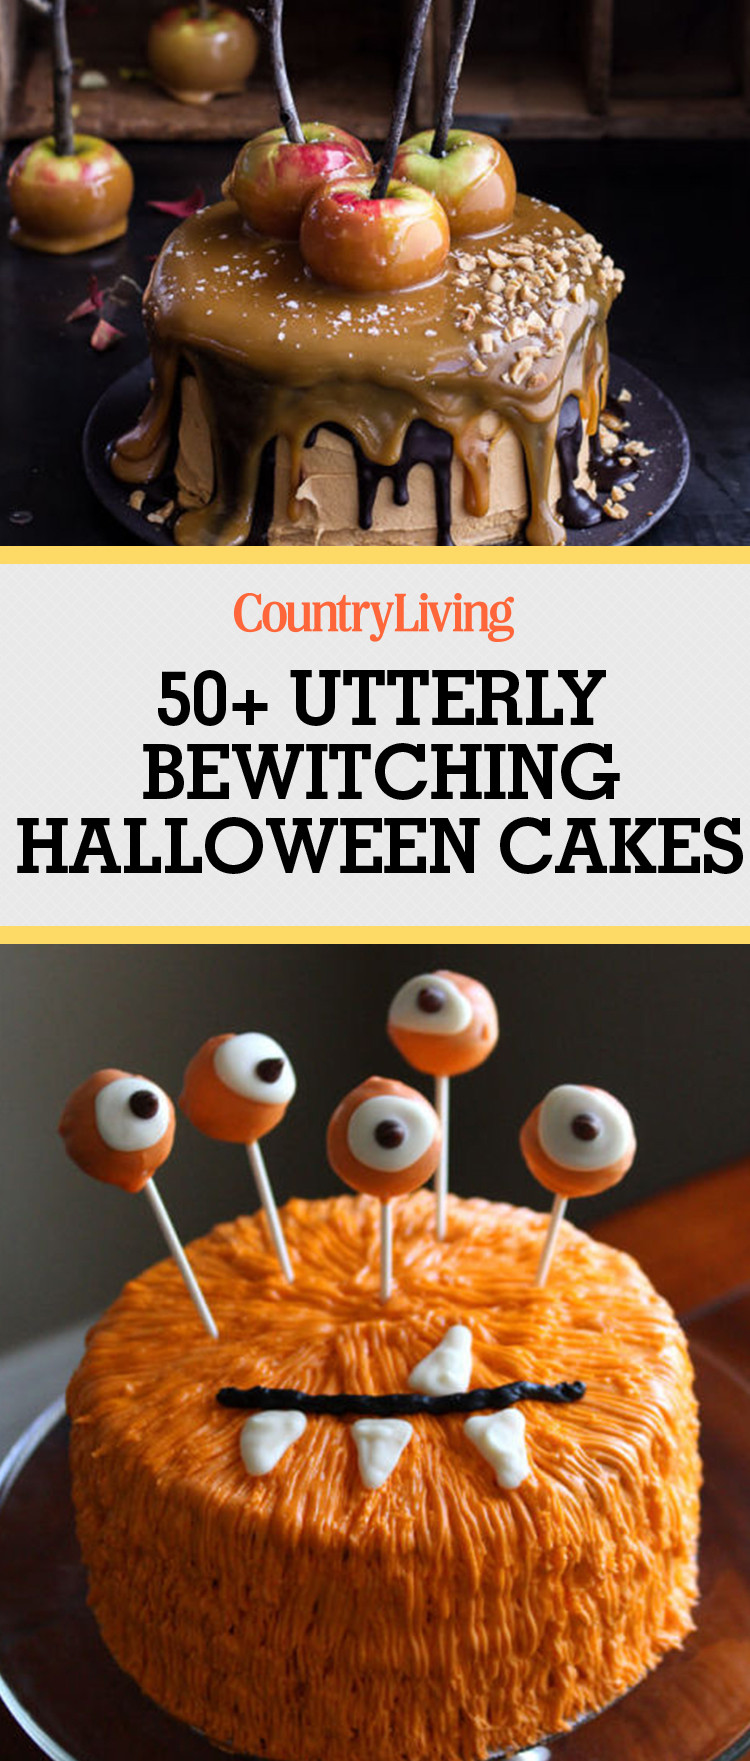 Halloween Cakes Recipes With Pictures  61 Easy Halloween Cakes Recipes and Halloween Cake